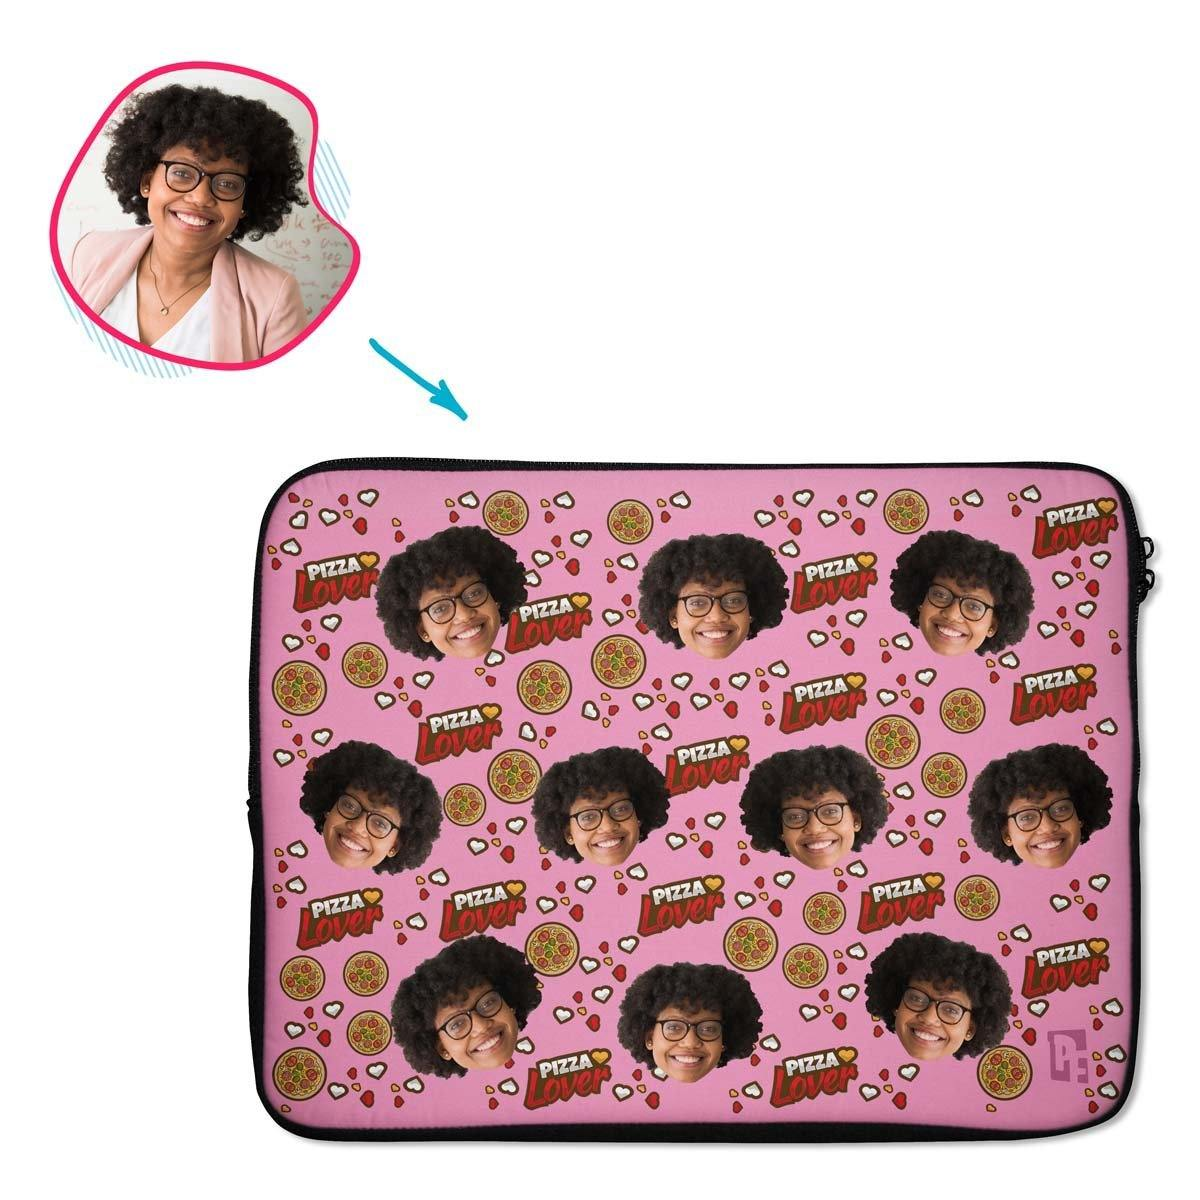 pink Pizza Lover laptop sleeve personalized with photo of face printed on them